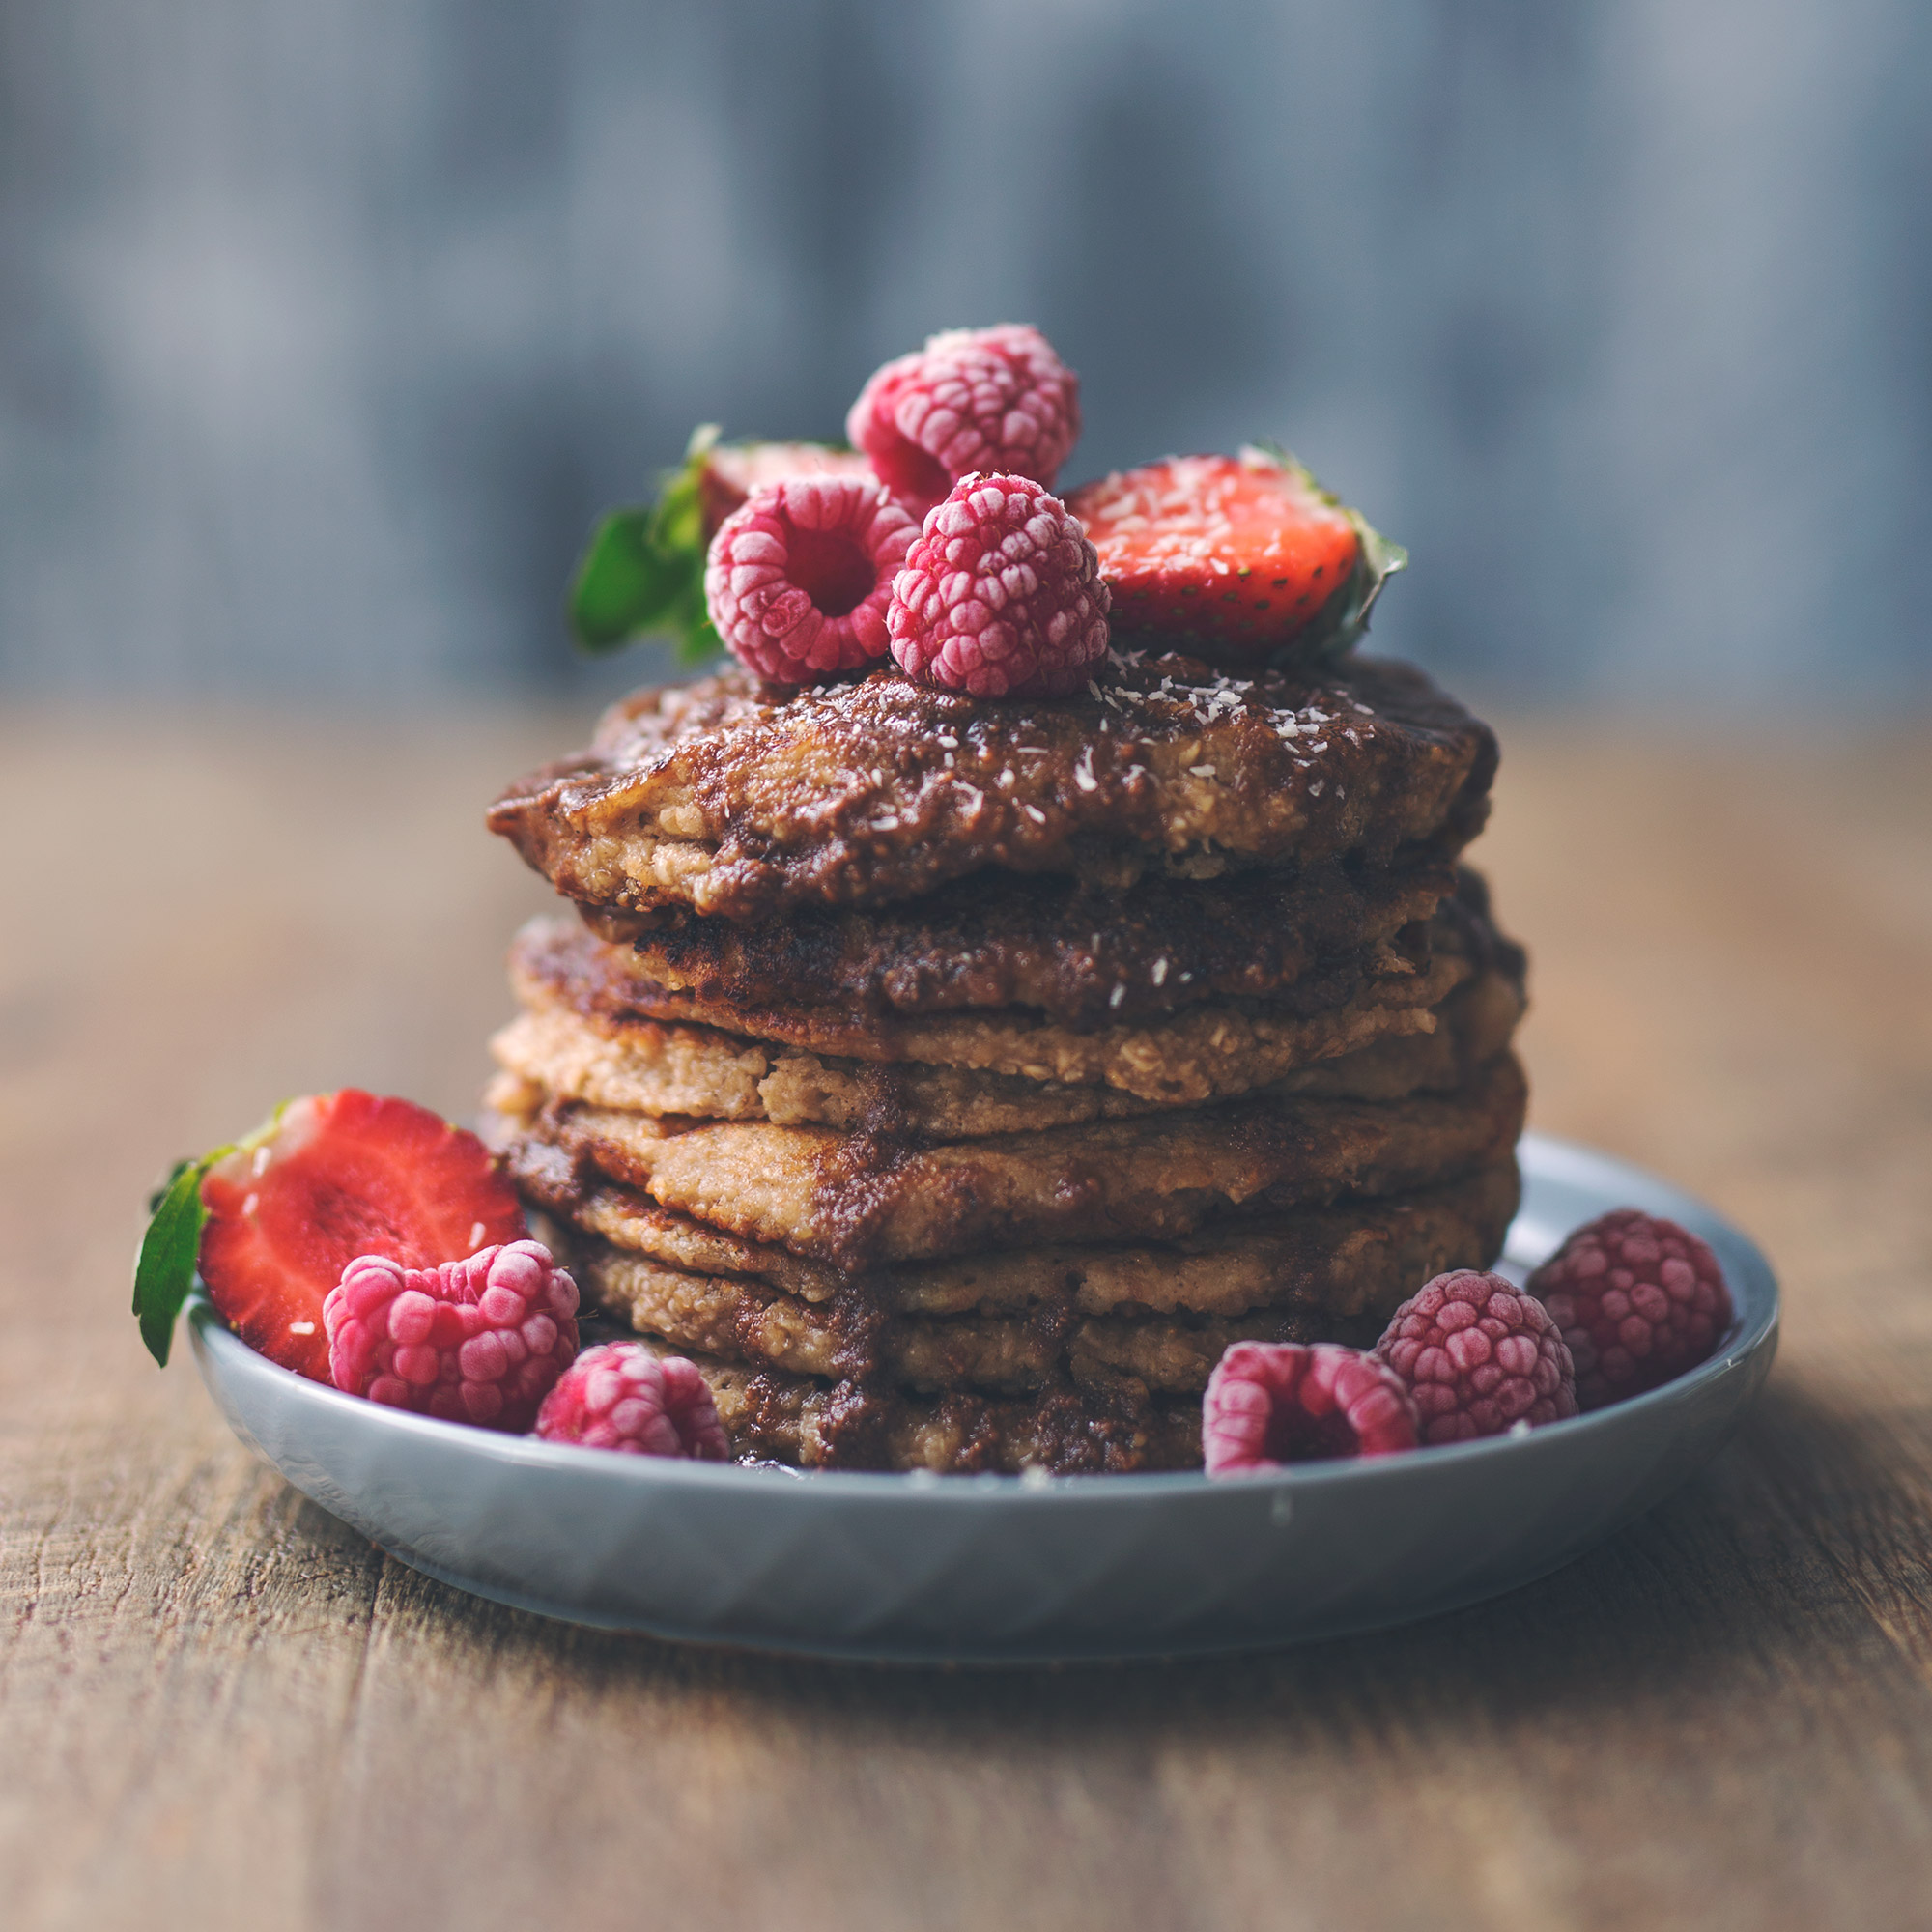 Vegan Oat Banana Pancakes with Chocolate Peanut Butter Sauce